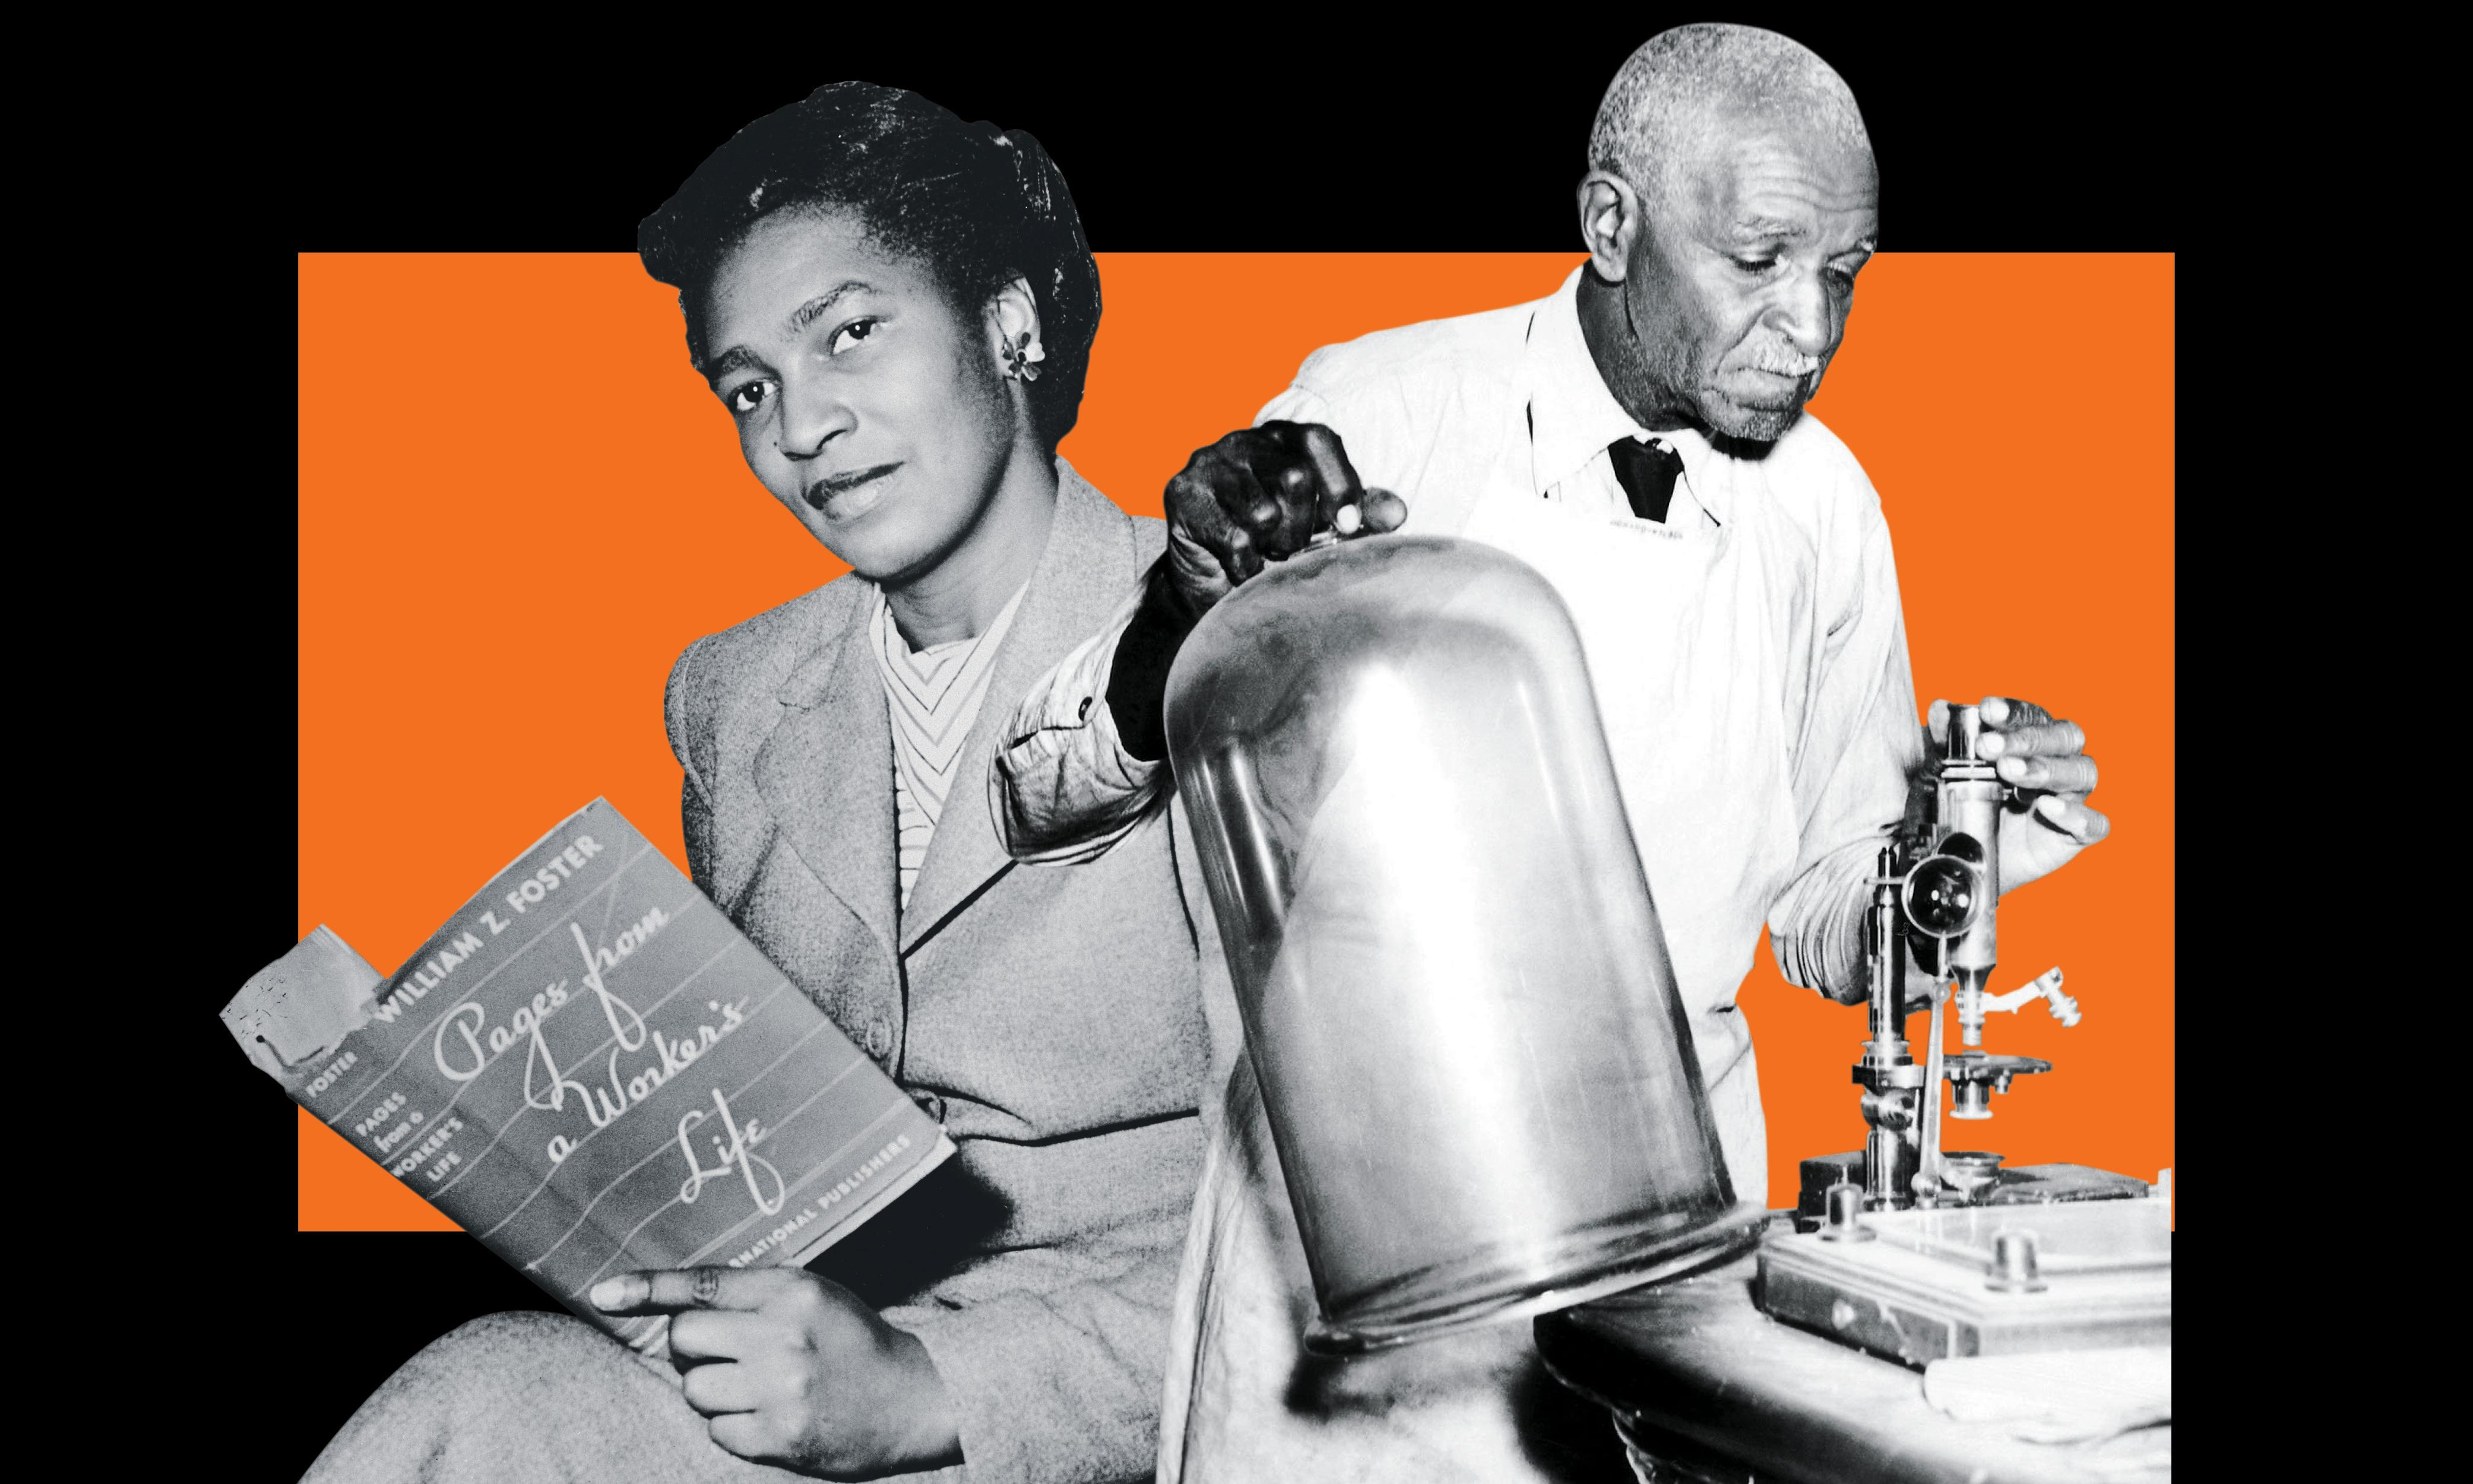 From emperors to inventors: the unsung heroes to celebrate in Black History Month